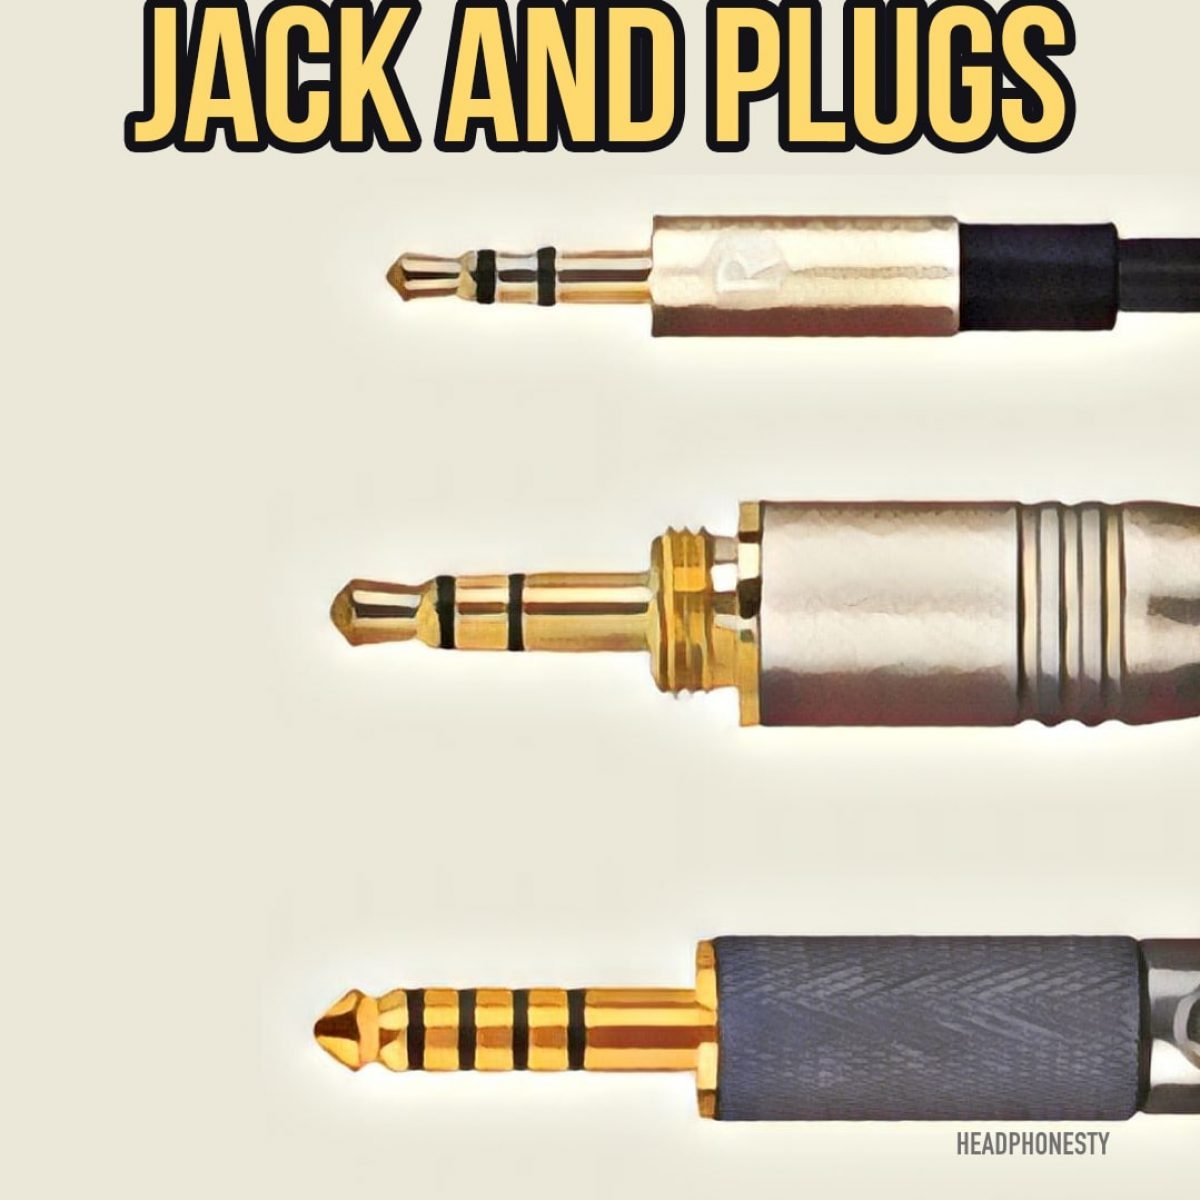 Headphone Jack and Plugs: Everything You Need to Know - HeadphonestyHeadphonesty